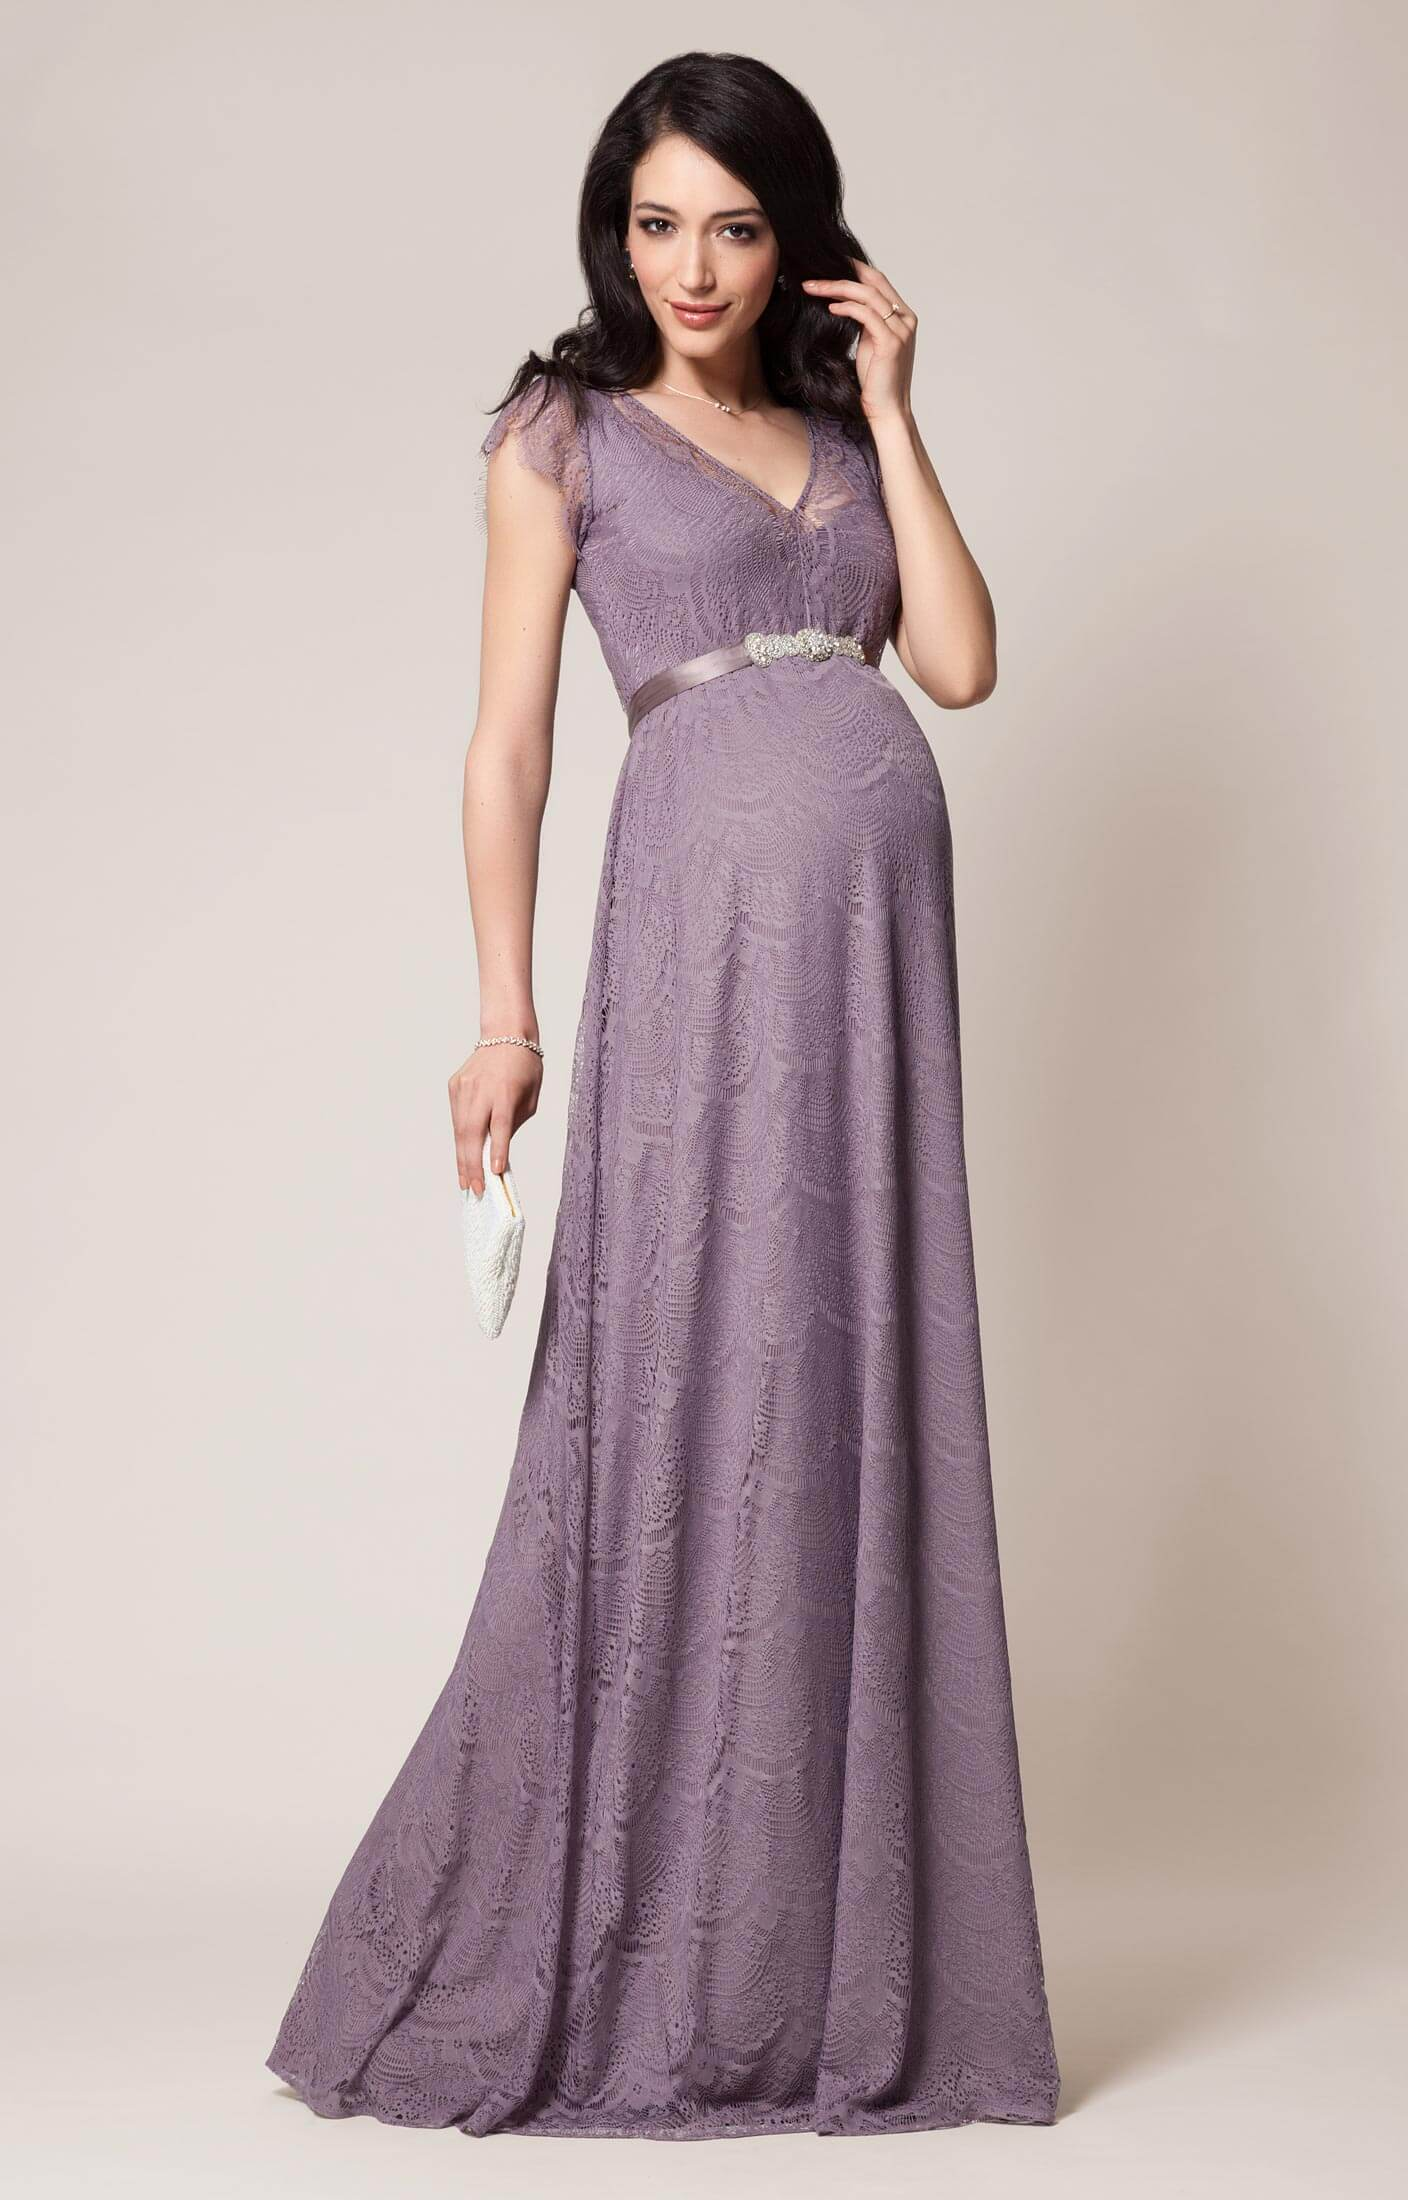 Dresses made of stretch cotton lace, jersey, and stretch crepe are more breathable and a comfortable maternity bridesmaid dress option; and styles with elastic, adjustable, or no waist require.